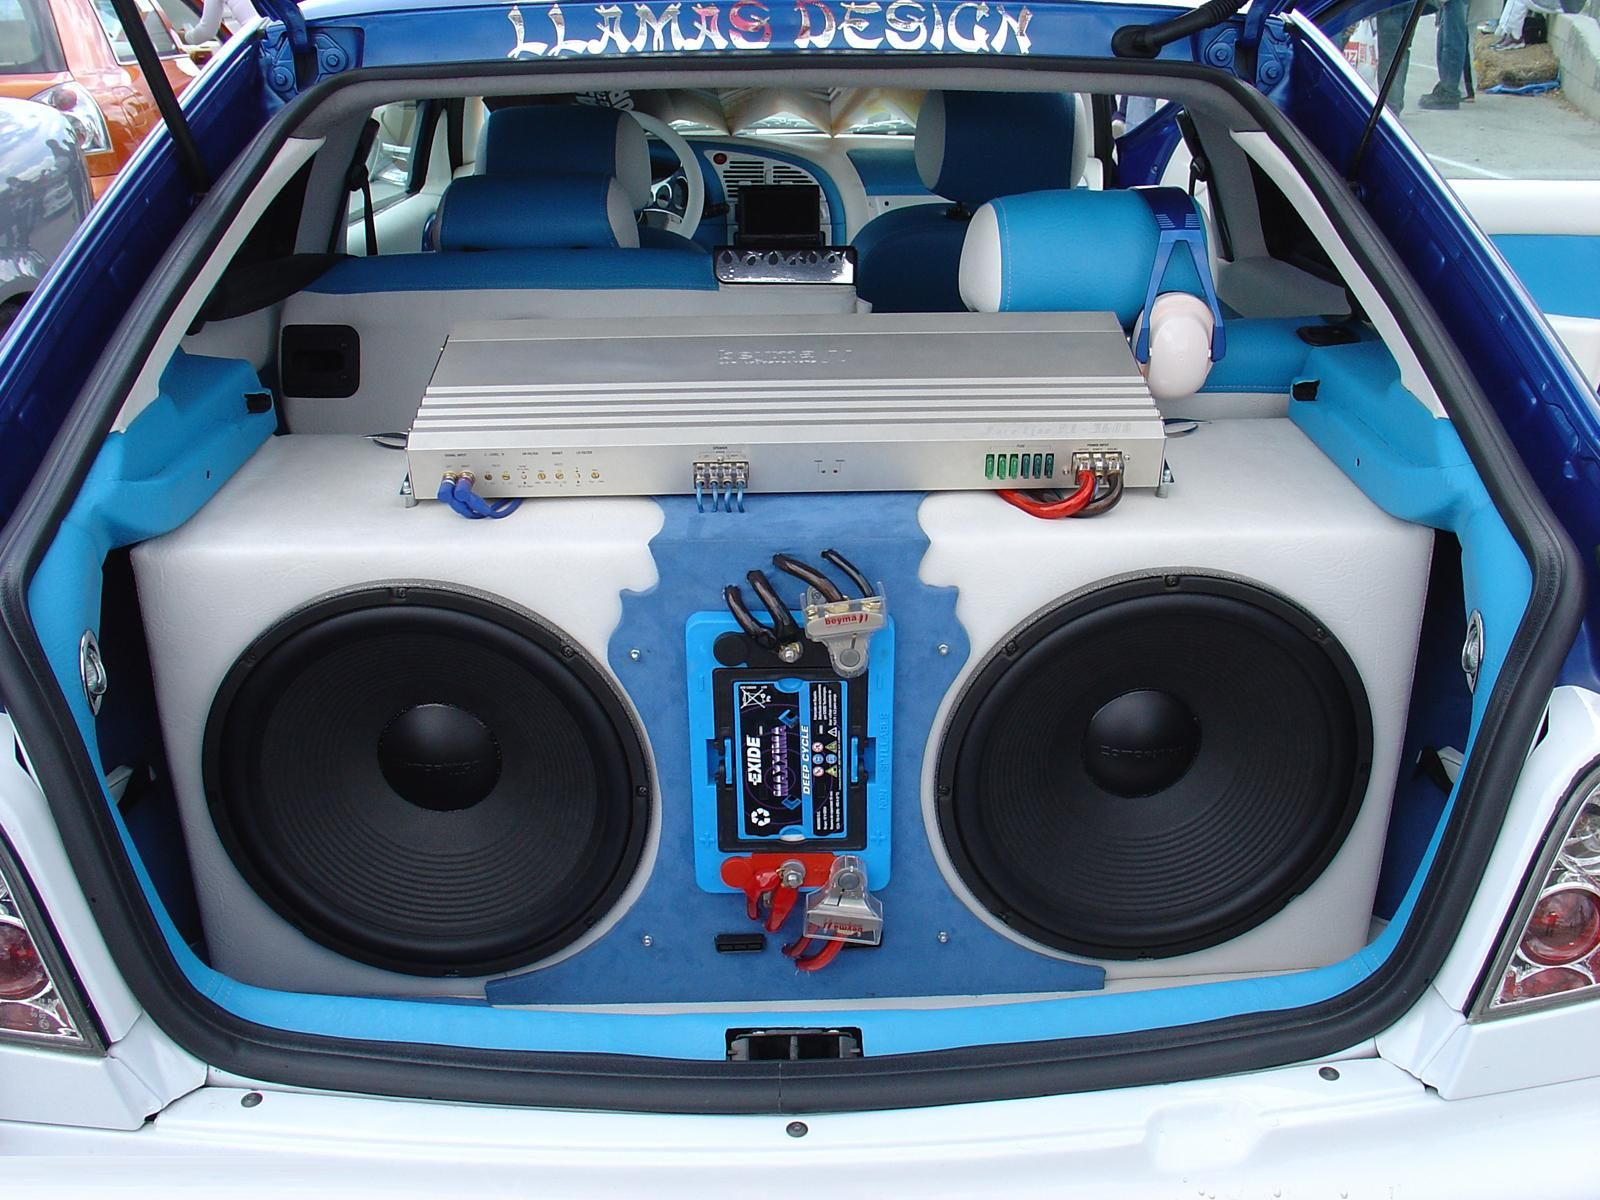 speakers for cars. top 10 luxurious car speakers expose your standard for cars 6